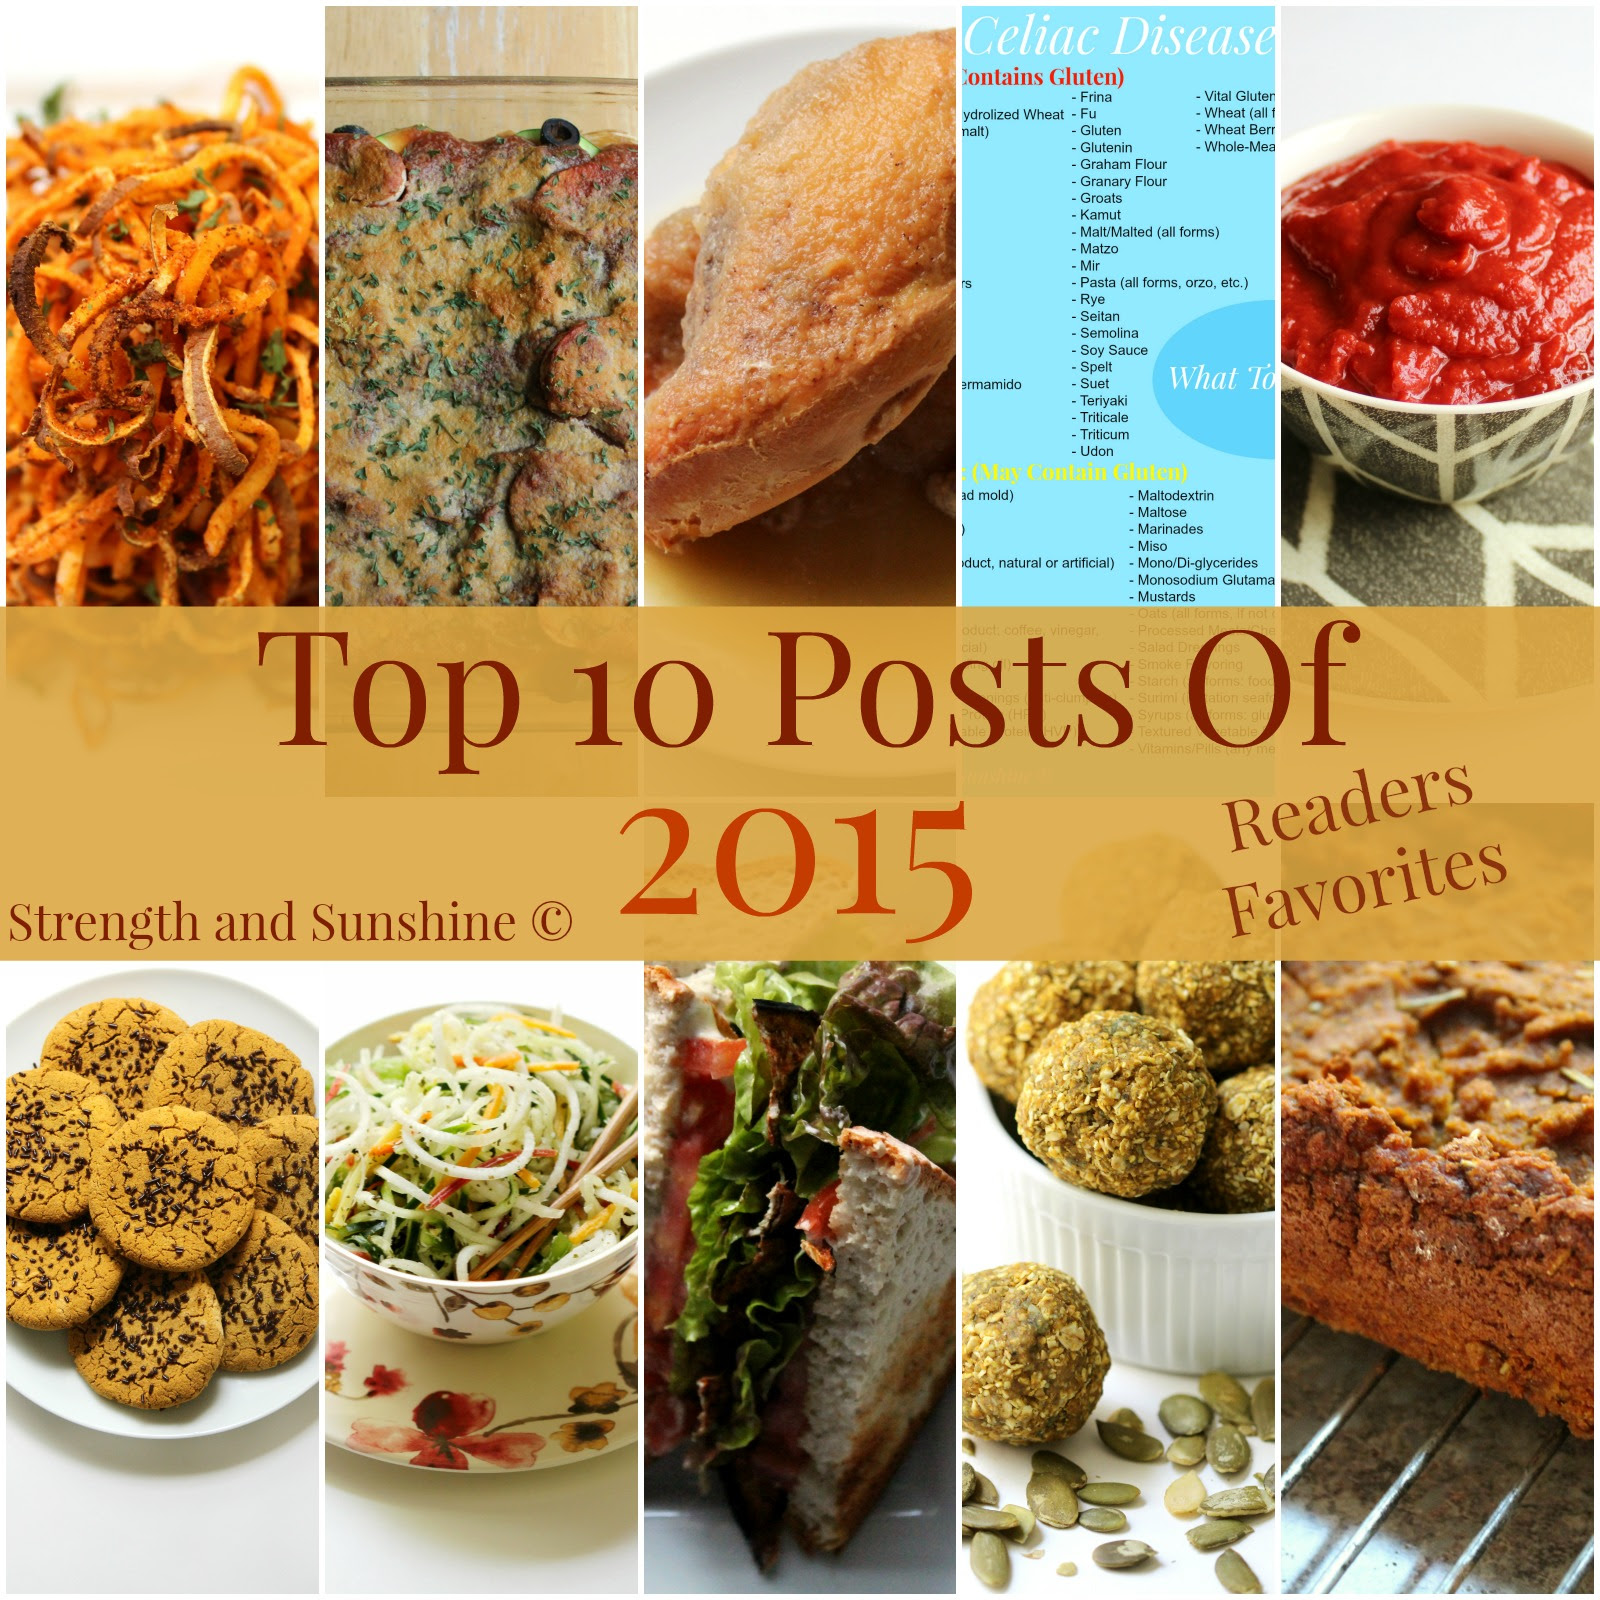 Top 10 Posts of 2015 by Strength and Sunshine